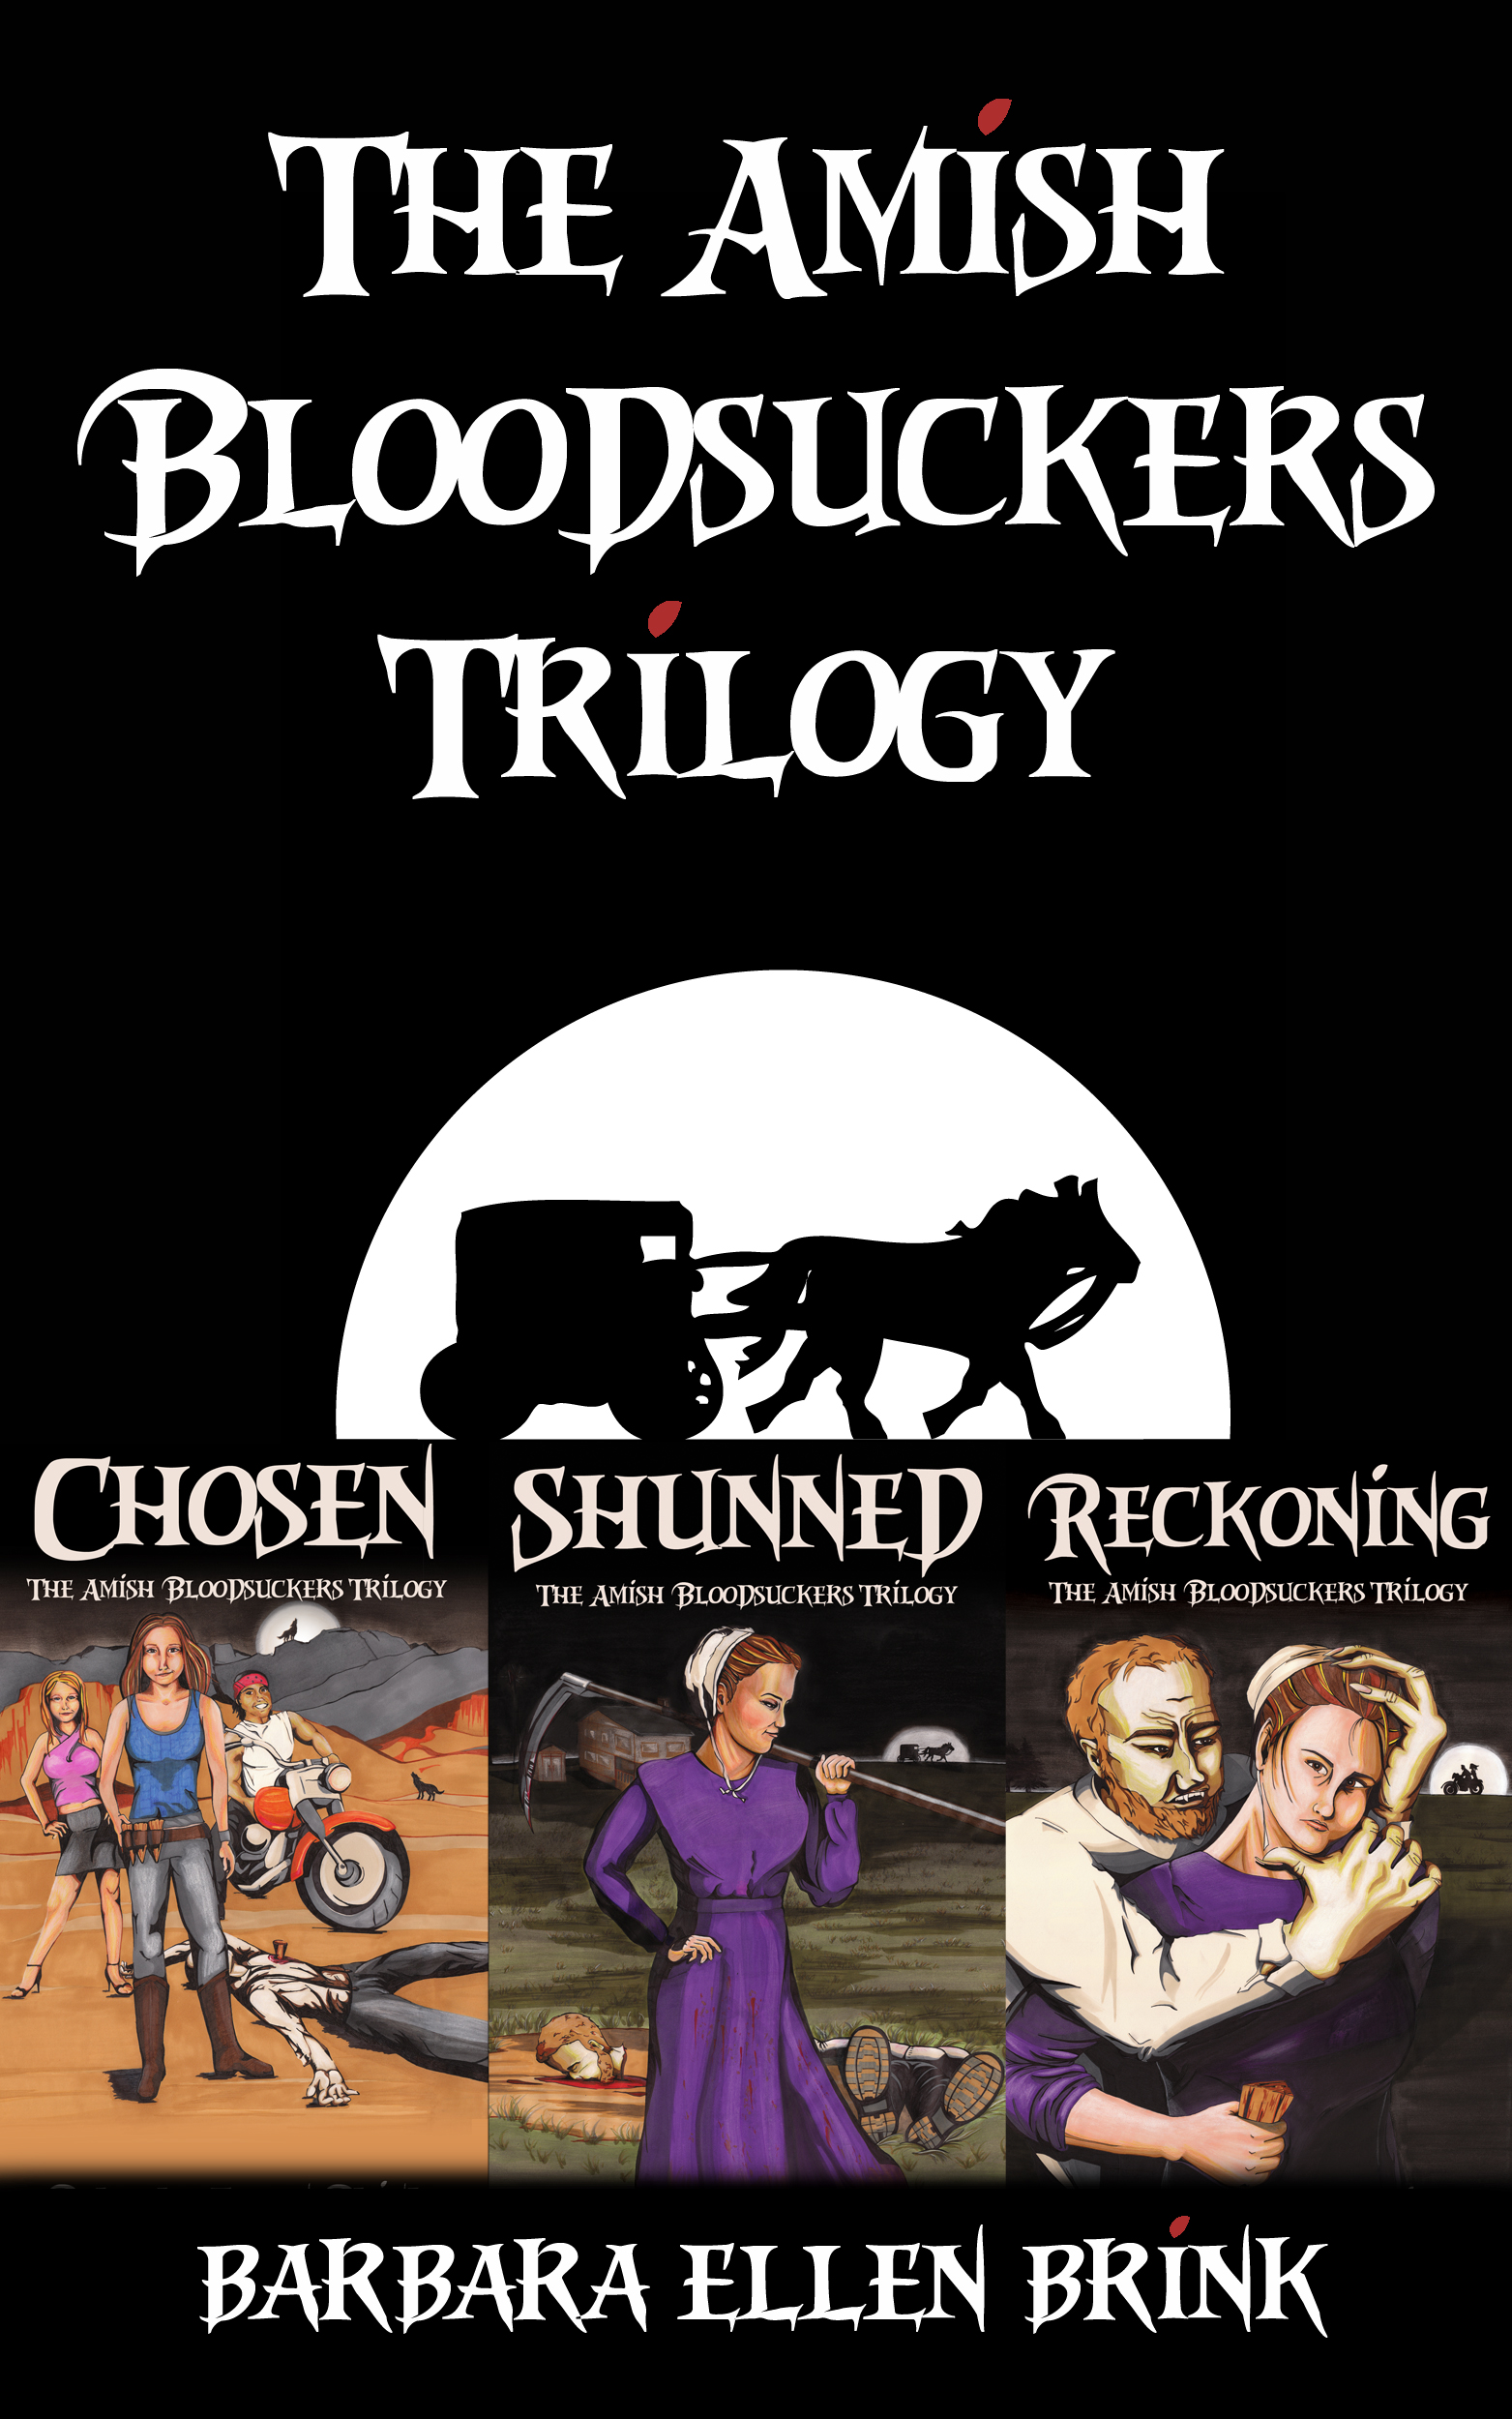 The Amish Bloodsuckers Trilogy (ebook Bundle)